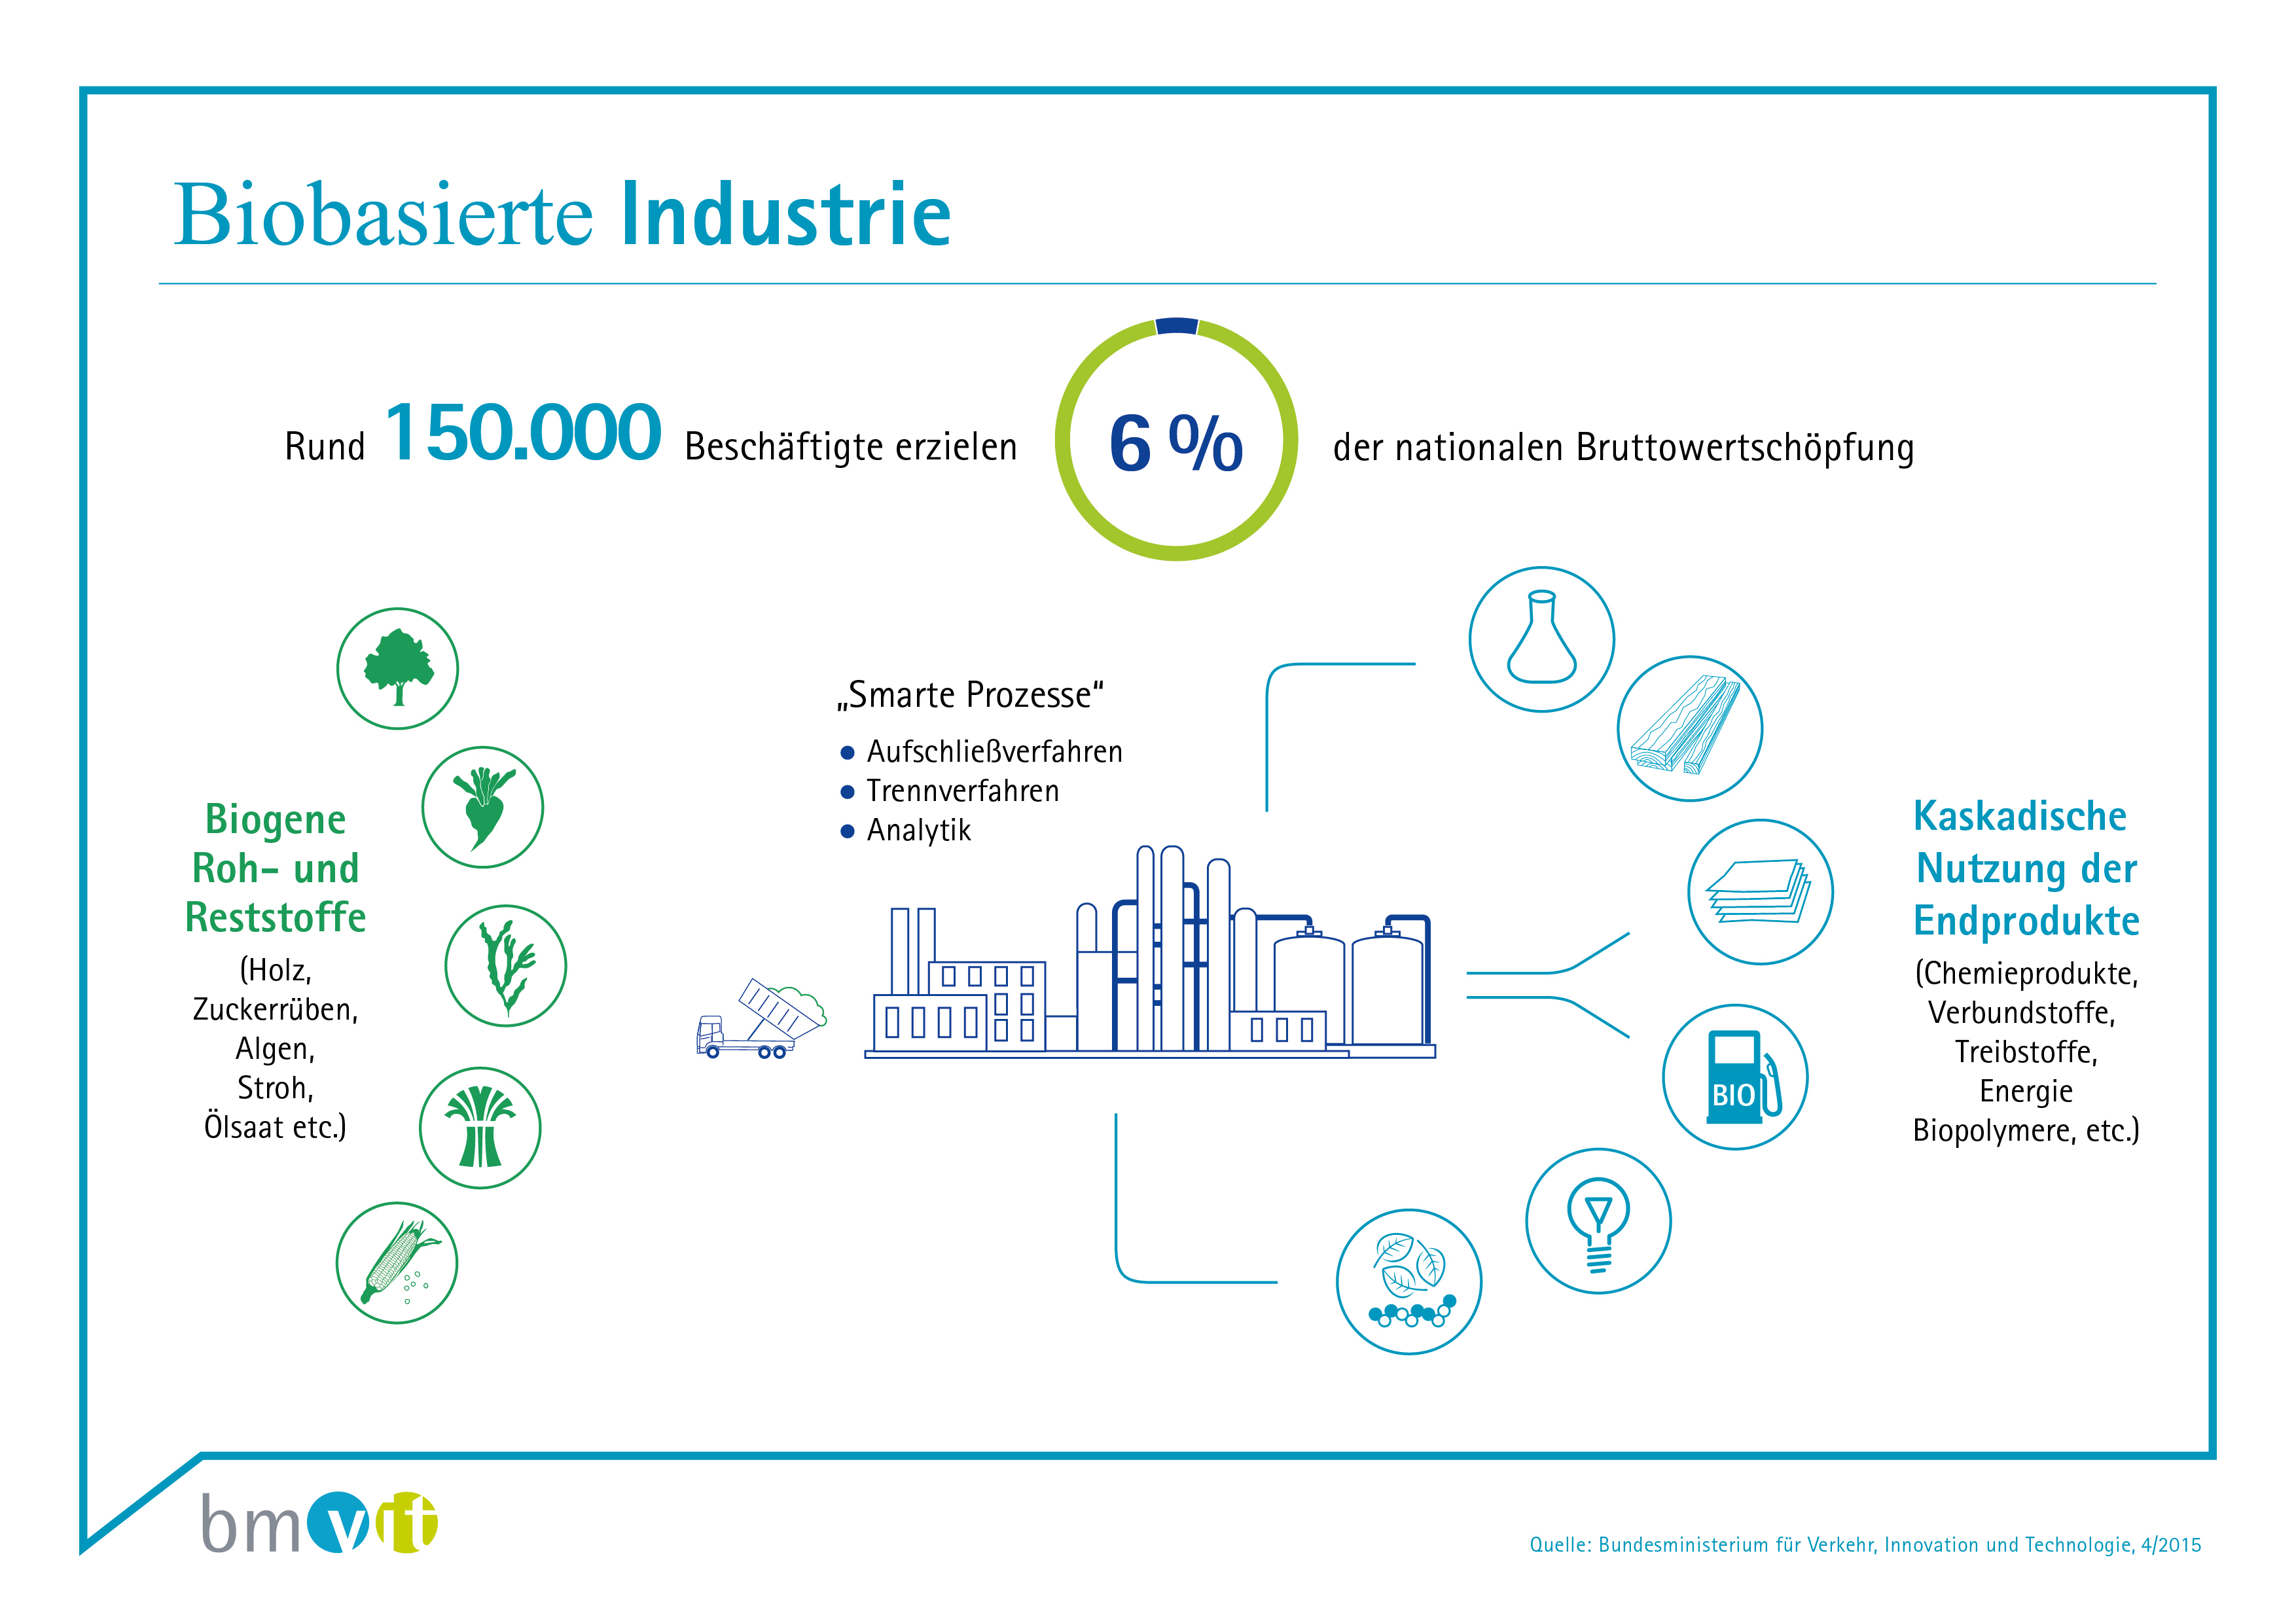 Developing the Austrian biobased industry